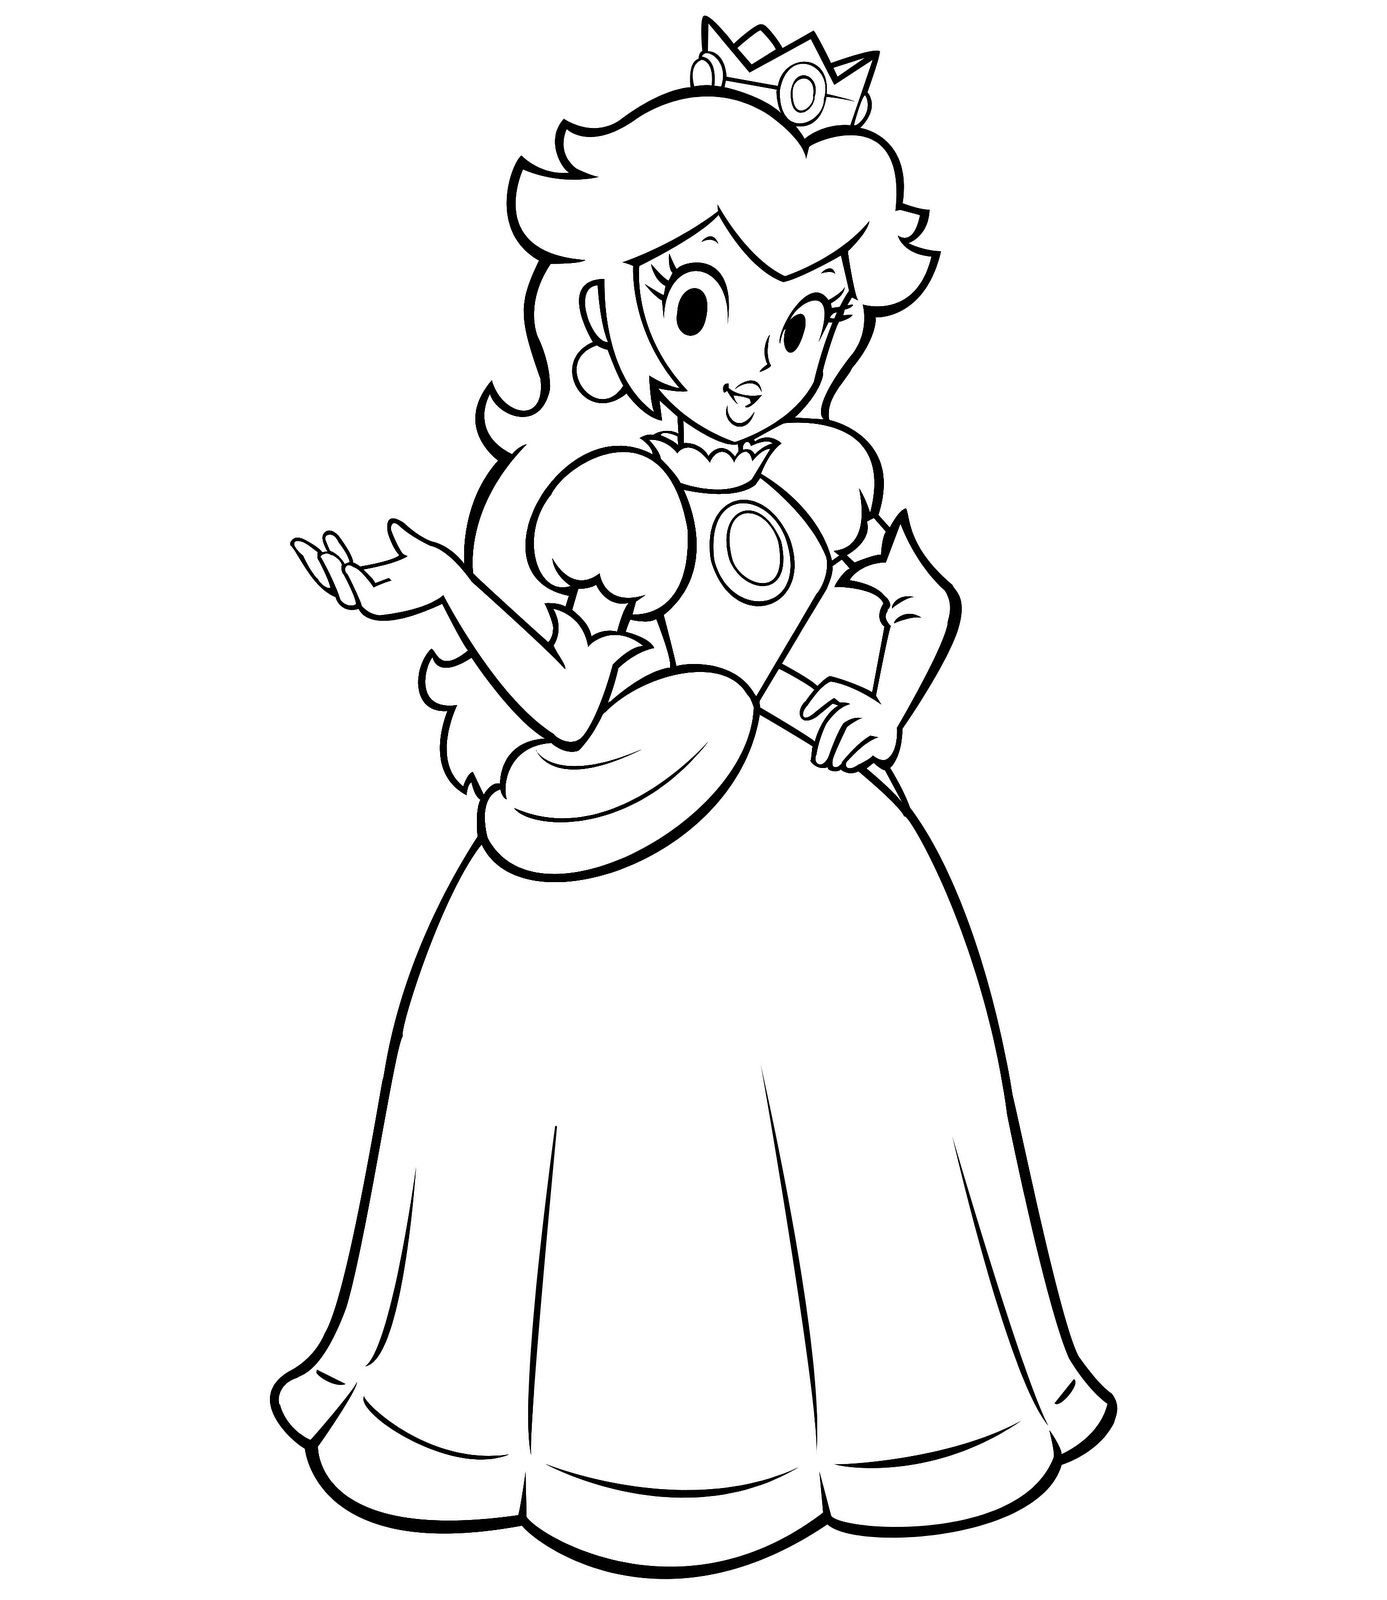 Free Princess Peach Coloring Pages For Kids Princess Coloring